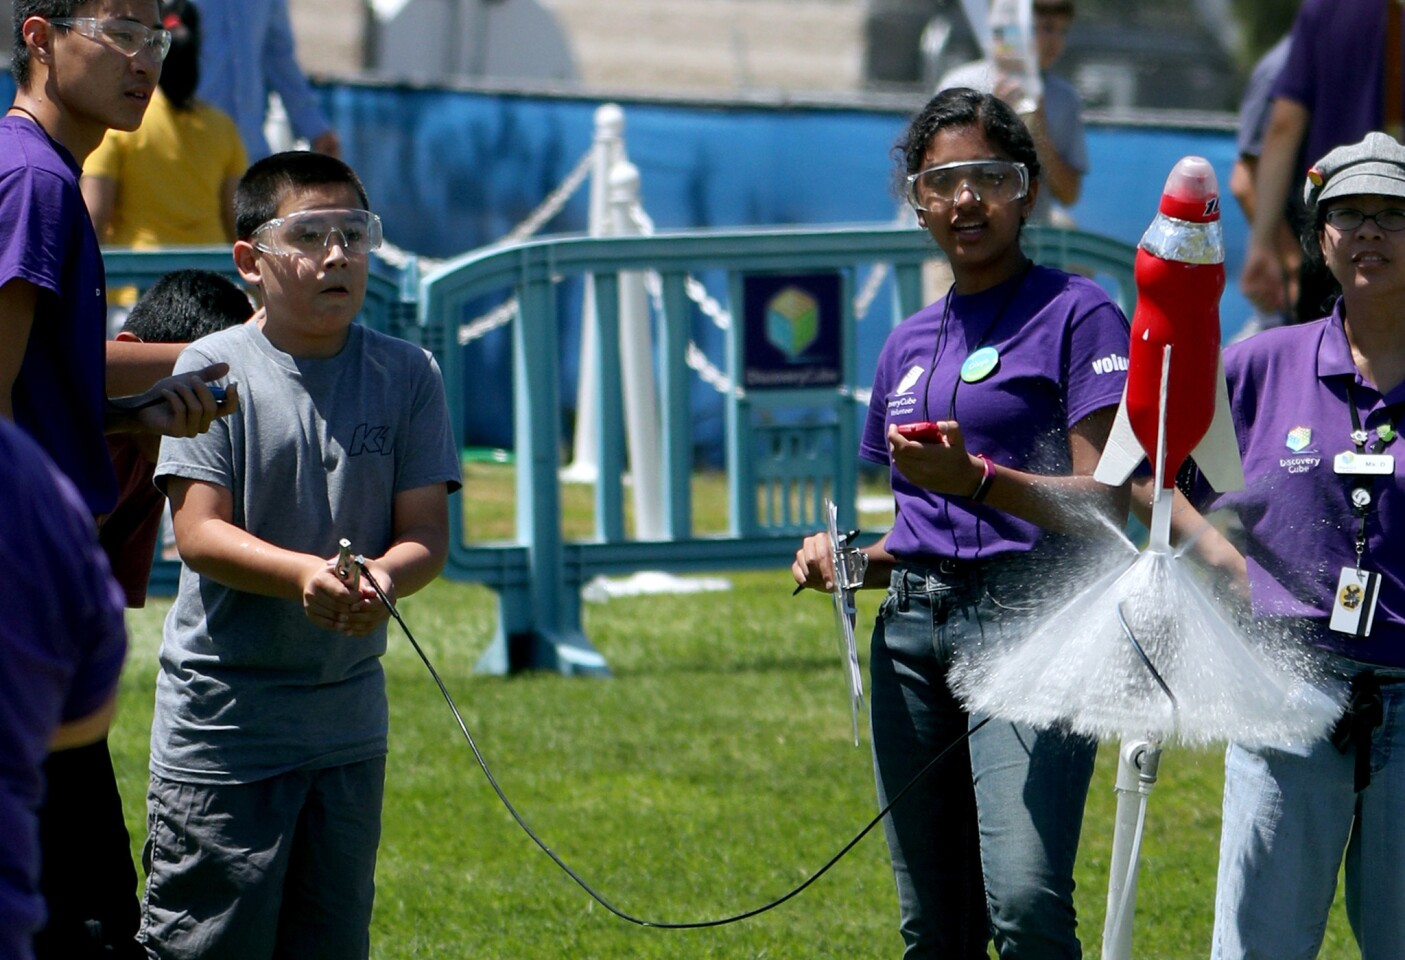 Photo Gallery: Soda bottle rockets launched during Discovery Cube event at Boeing